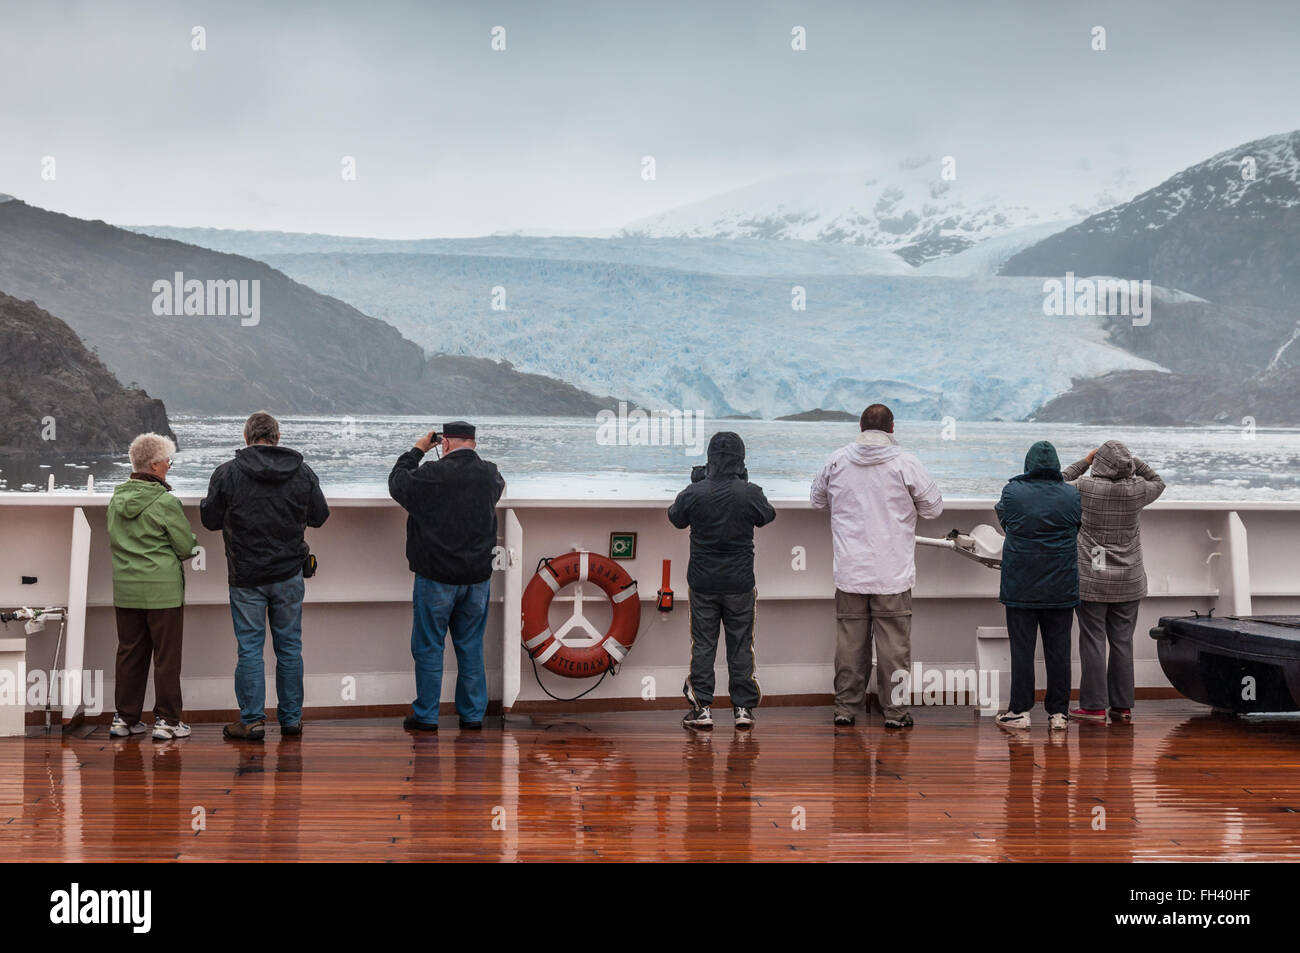 Passengers on board the cruise ship Veendam viewing beautiful glacie - Stock Image